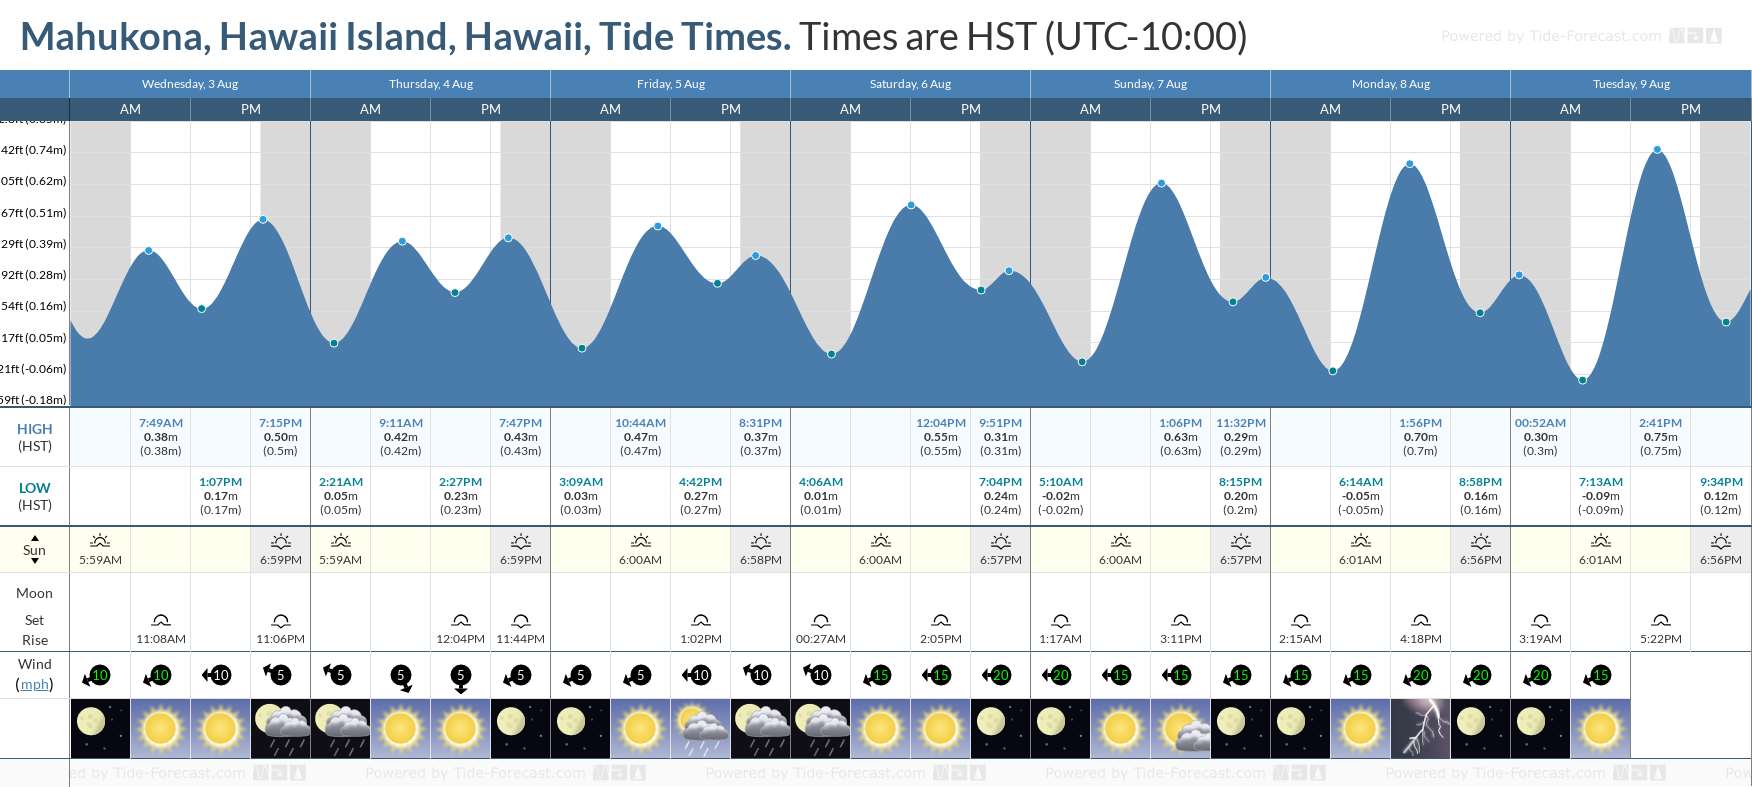 Mahukona, Hawaii Island, Hawaii Tide Chart including high and low tide tide times for the next 7 days